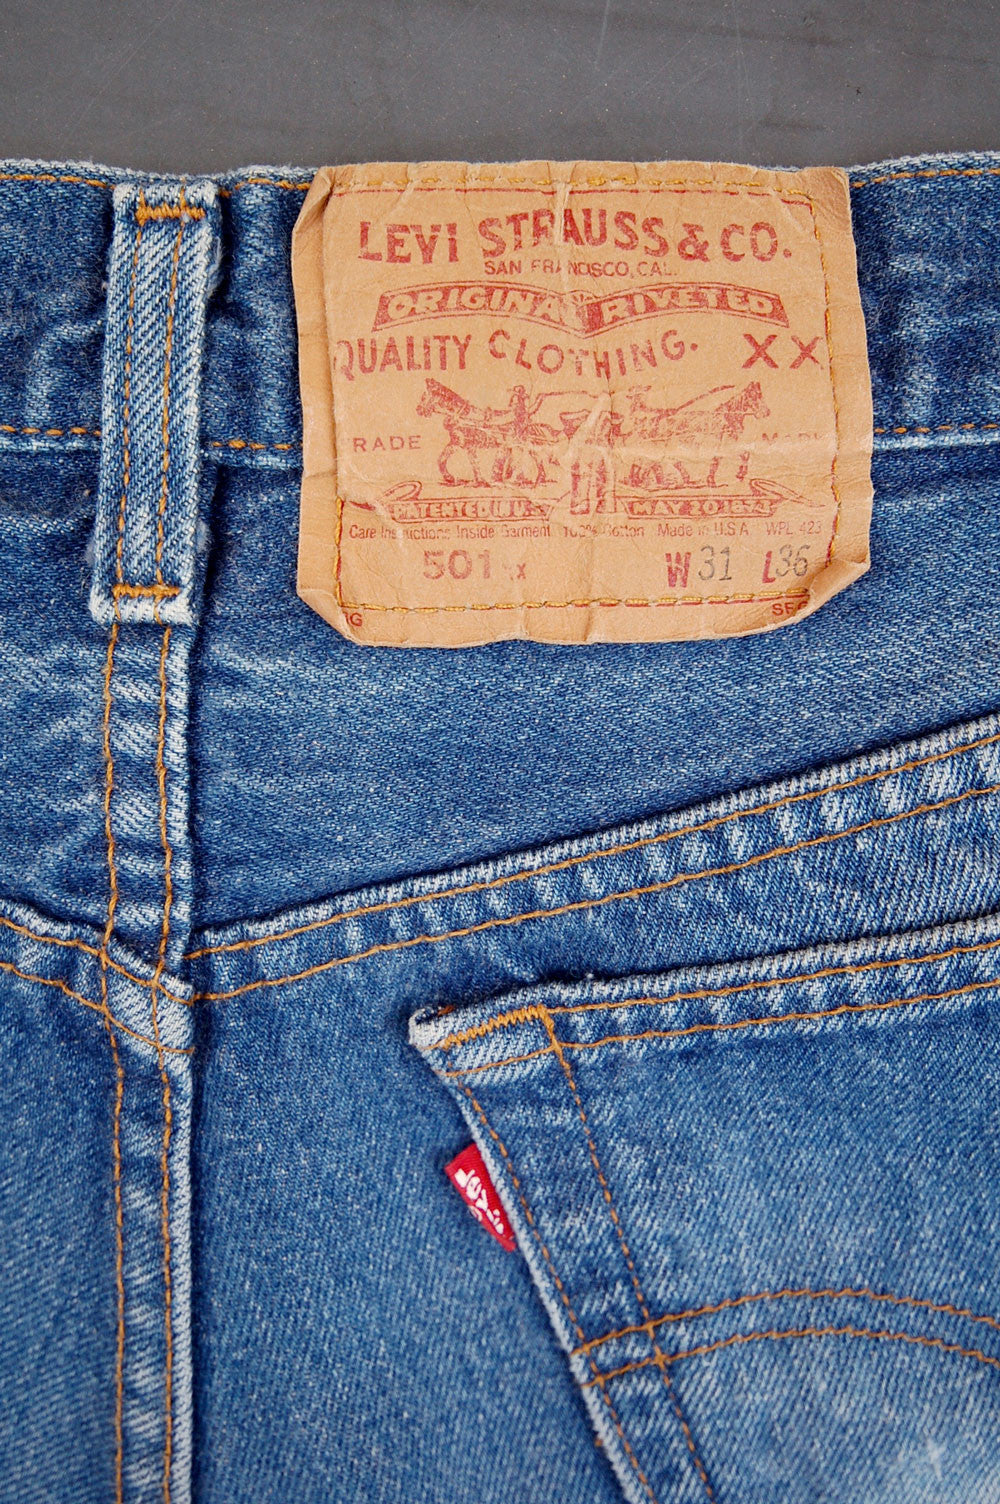 Vintage Levi's 501xx USA Transitional Denim Jeans